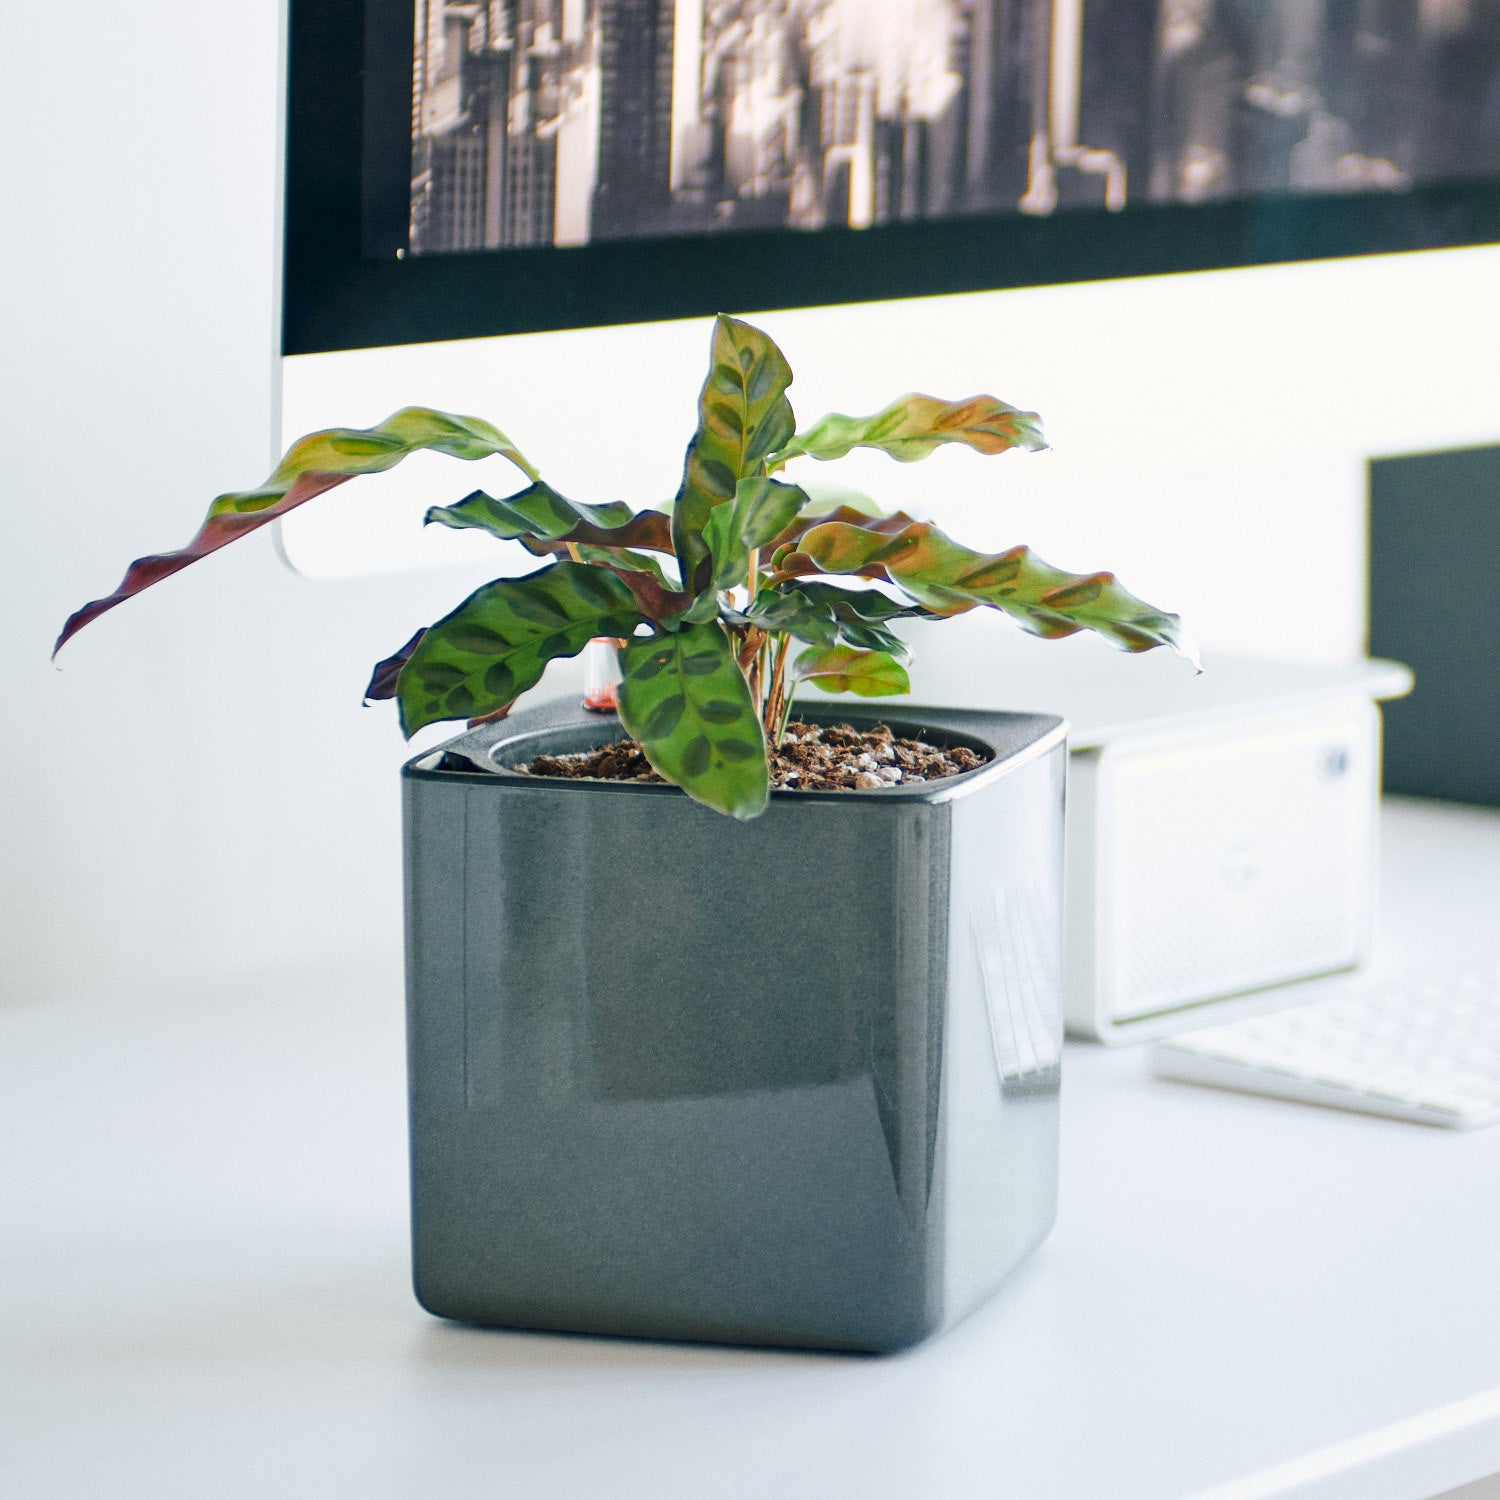 Calathea In Lechuza Cube Charcoal White Planter | My City Plants